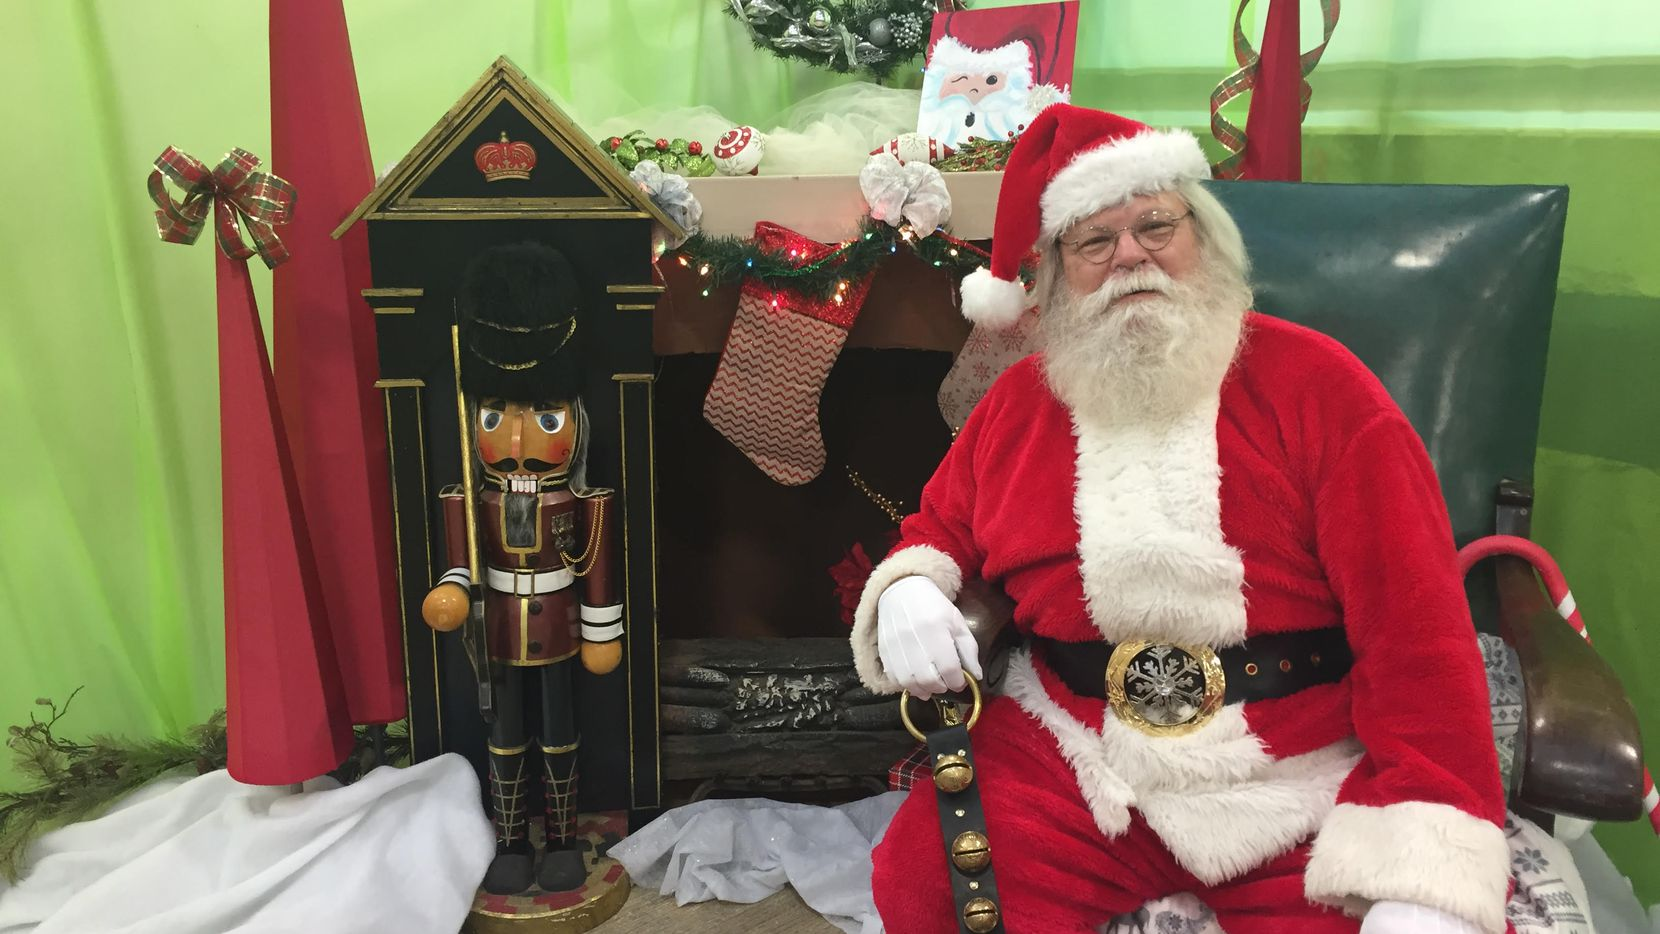 The annual Funky Finds holiday market is back and features more than 200 local makers and pickers selling handmade, repurposed, upcycled and vintage items.